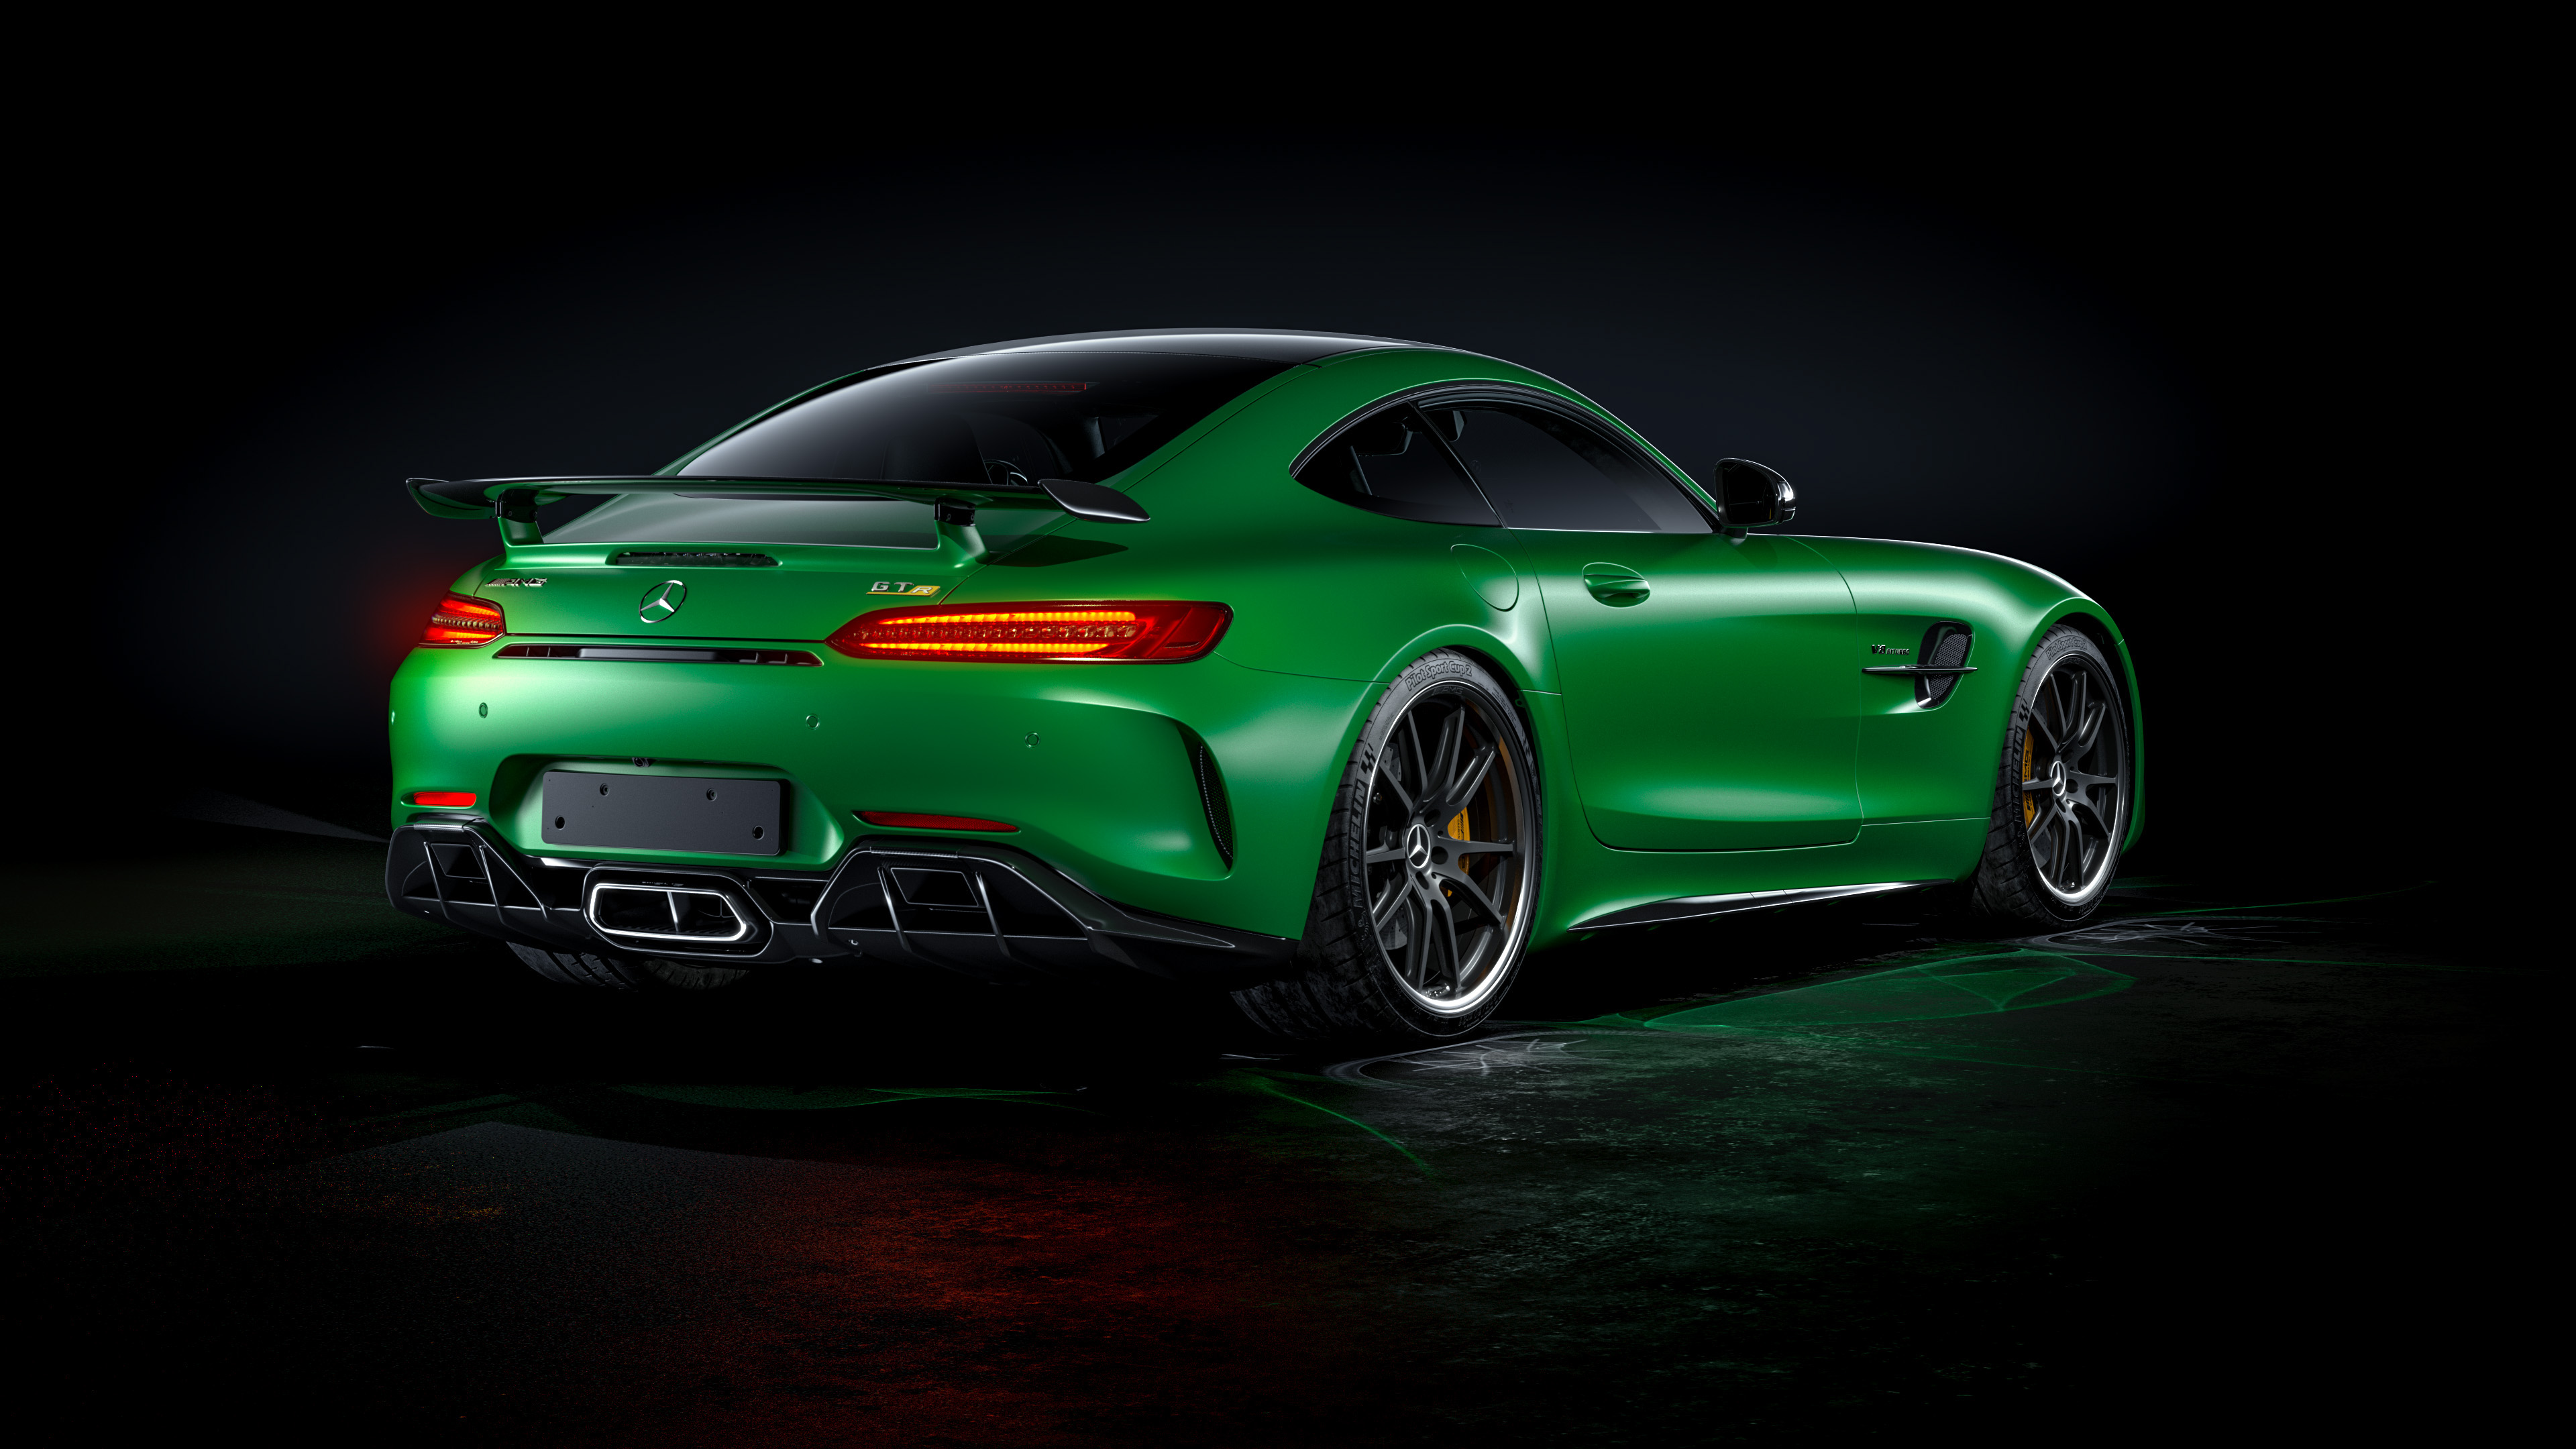 Mercedes Benz Amg Gtr 4k Rear, HD Cars, 4k Wallpapers ...